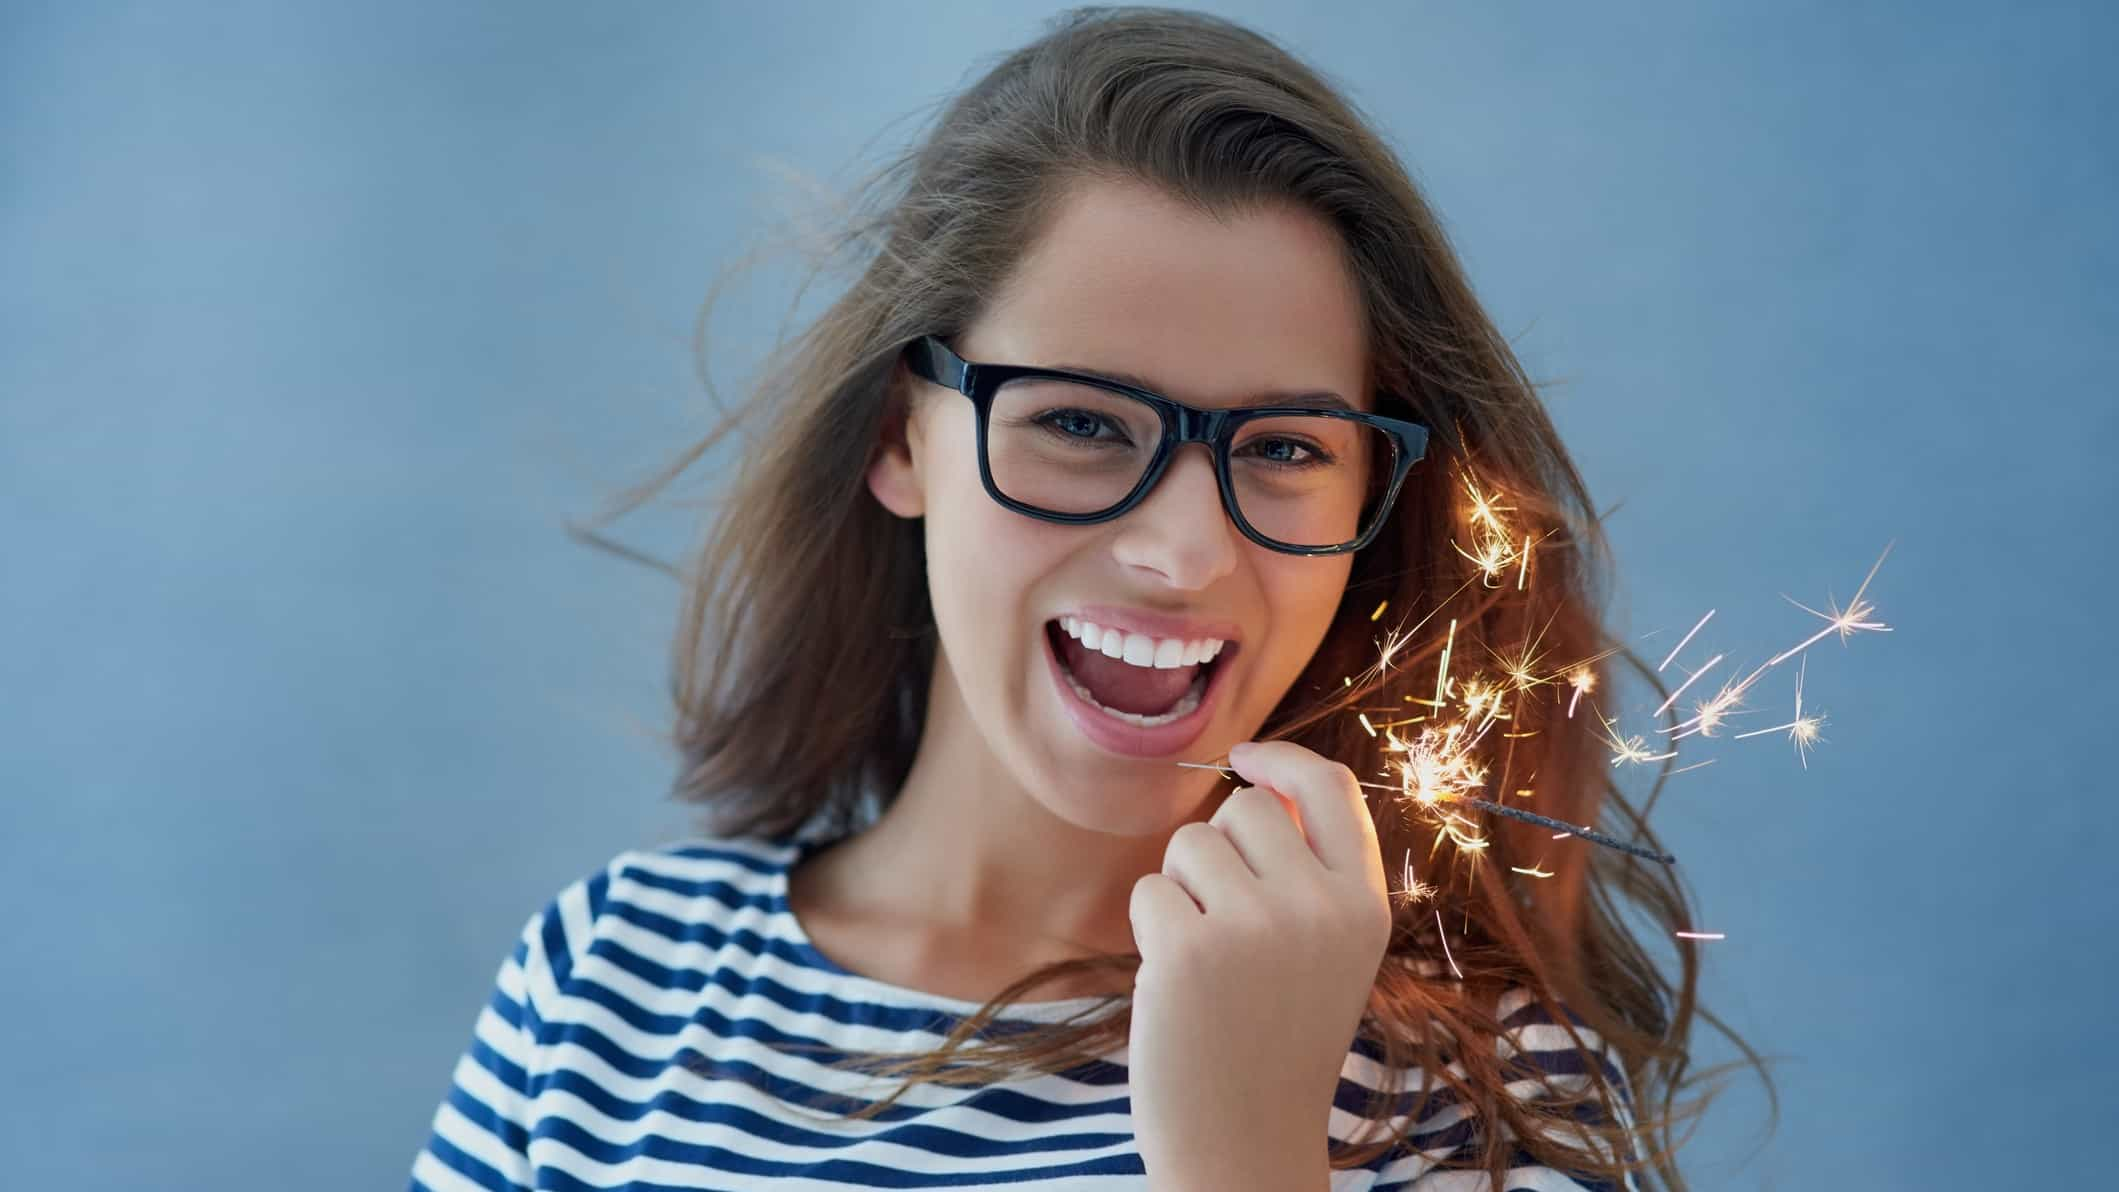 asx share price spark represented by smiling lady holding sparkler